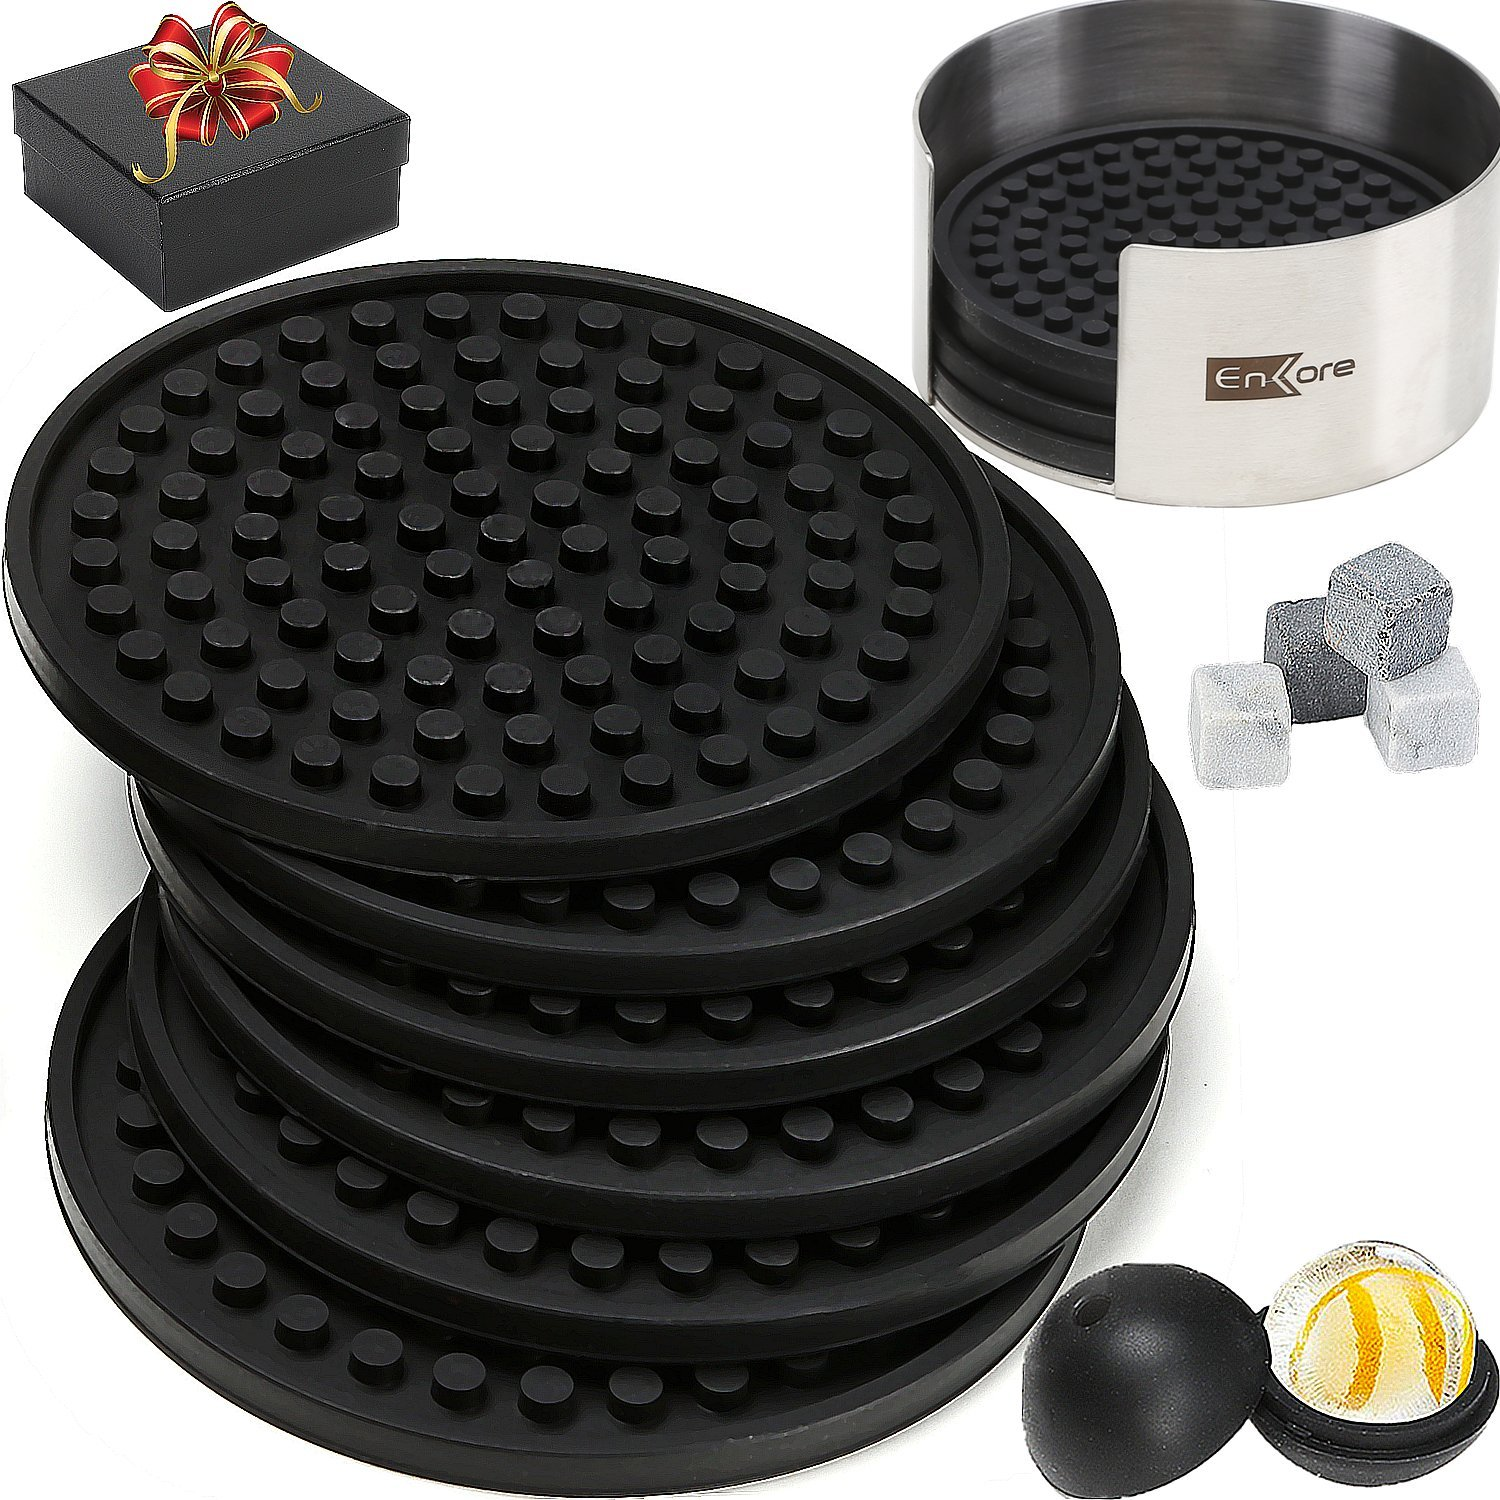 Coasters For Drinks 8 Pack In Sophisticated Stainless Steel Holder, Deluxe Bar Accessories Bonus Set With A Gift Box Contain Ice Ball Mold, 4 Whiskey Stones - Have Fun At Party And Protect Furniture by Enkore (Image #1)